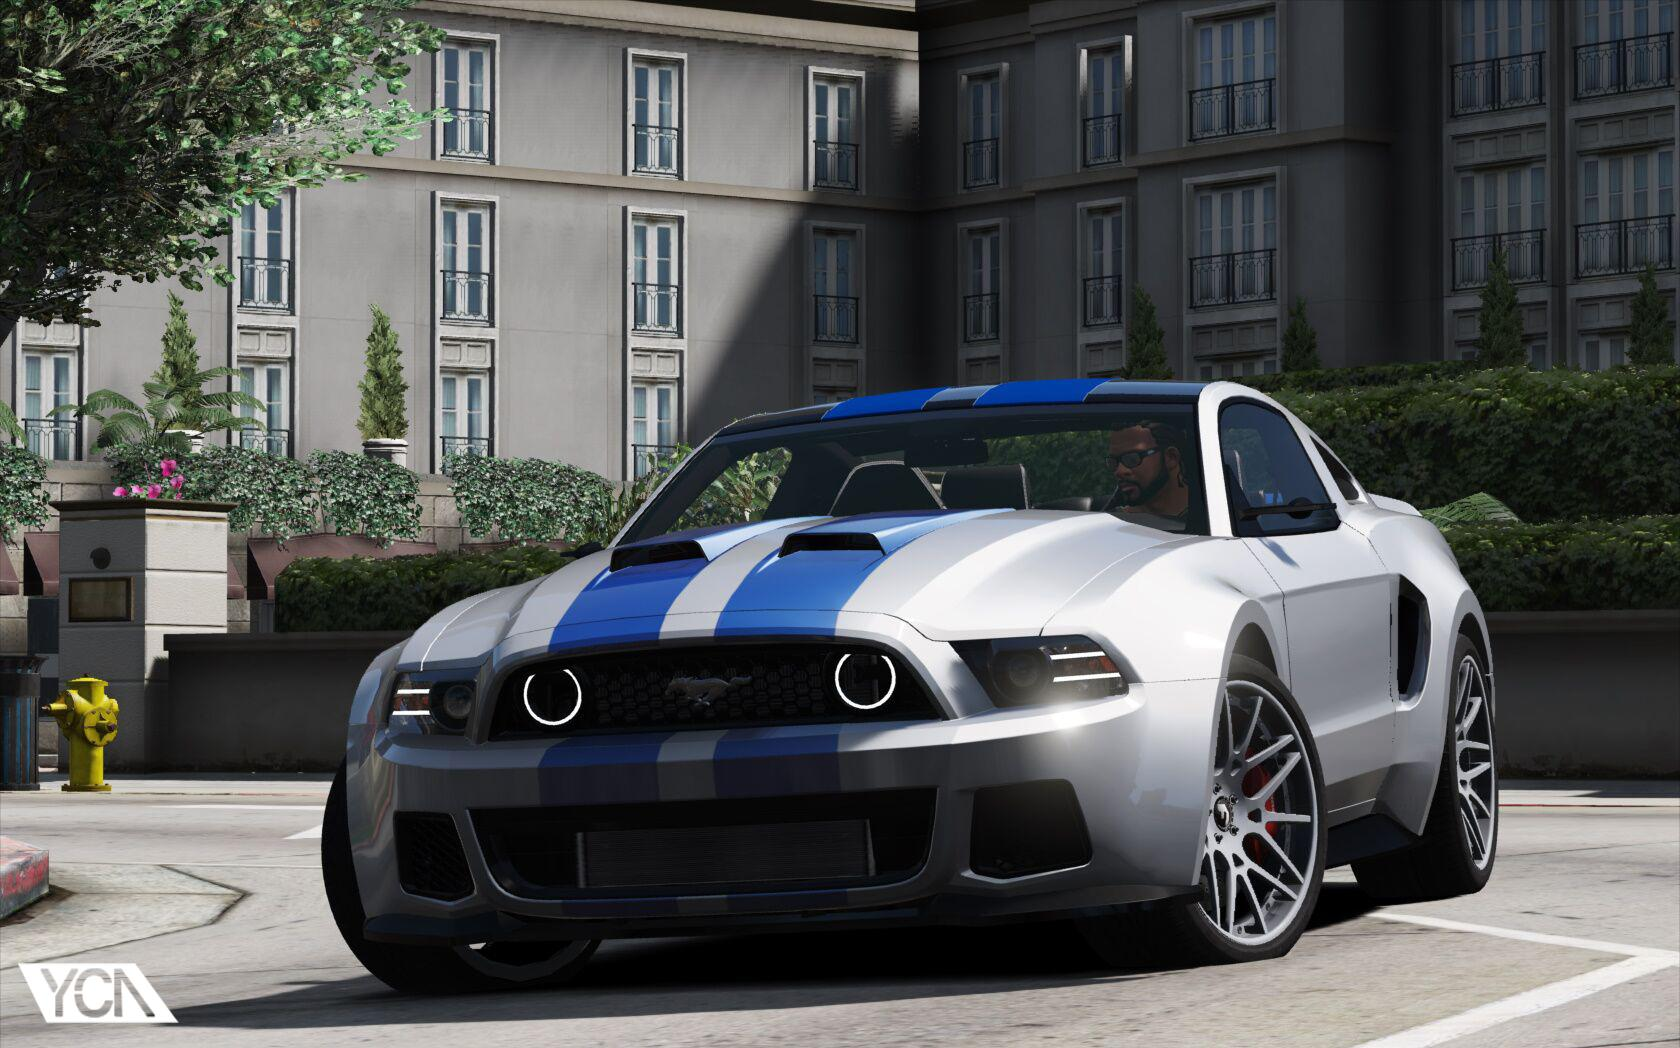 Latest Ford Mustang >> Ford Mustang GT NFS + GT500 2013 [Add-On] - GTA5-Mods.com